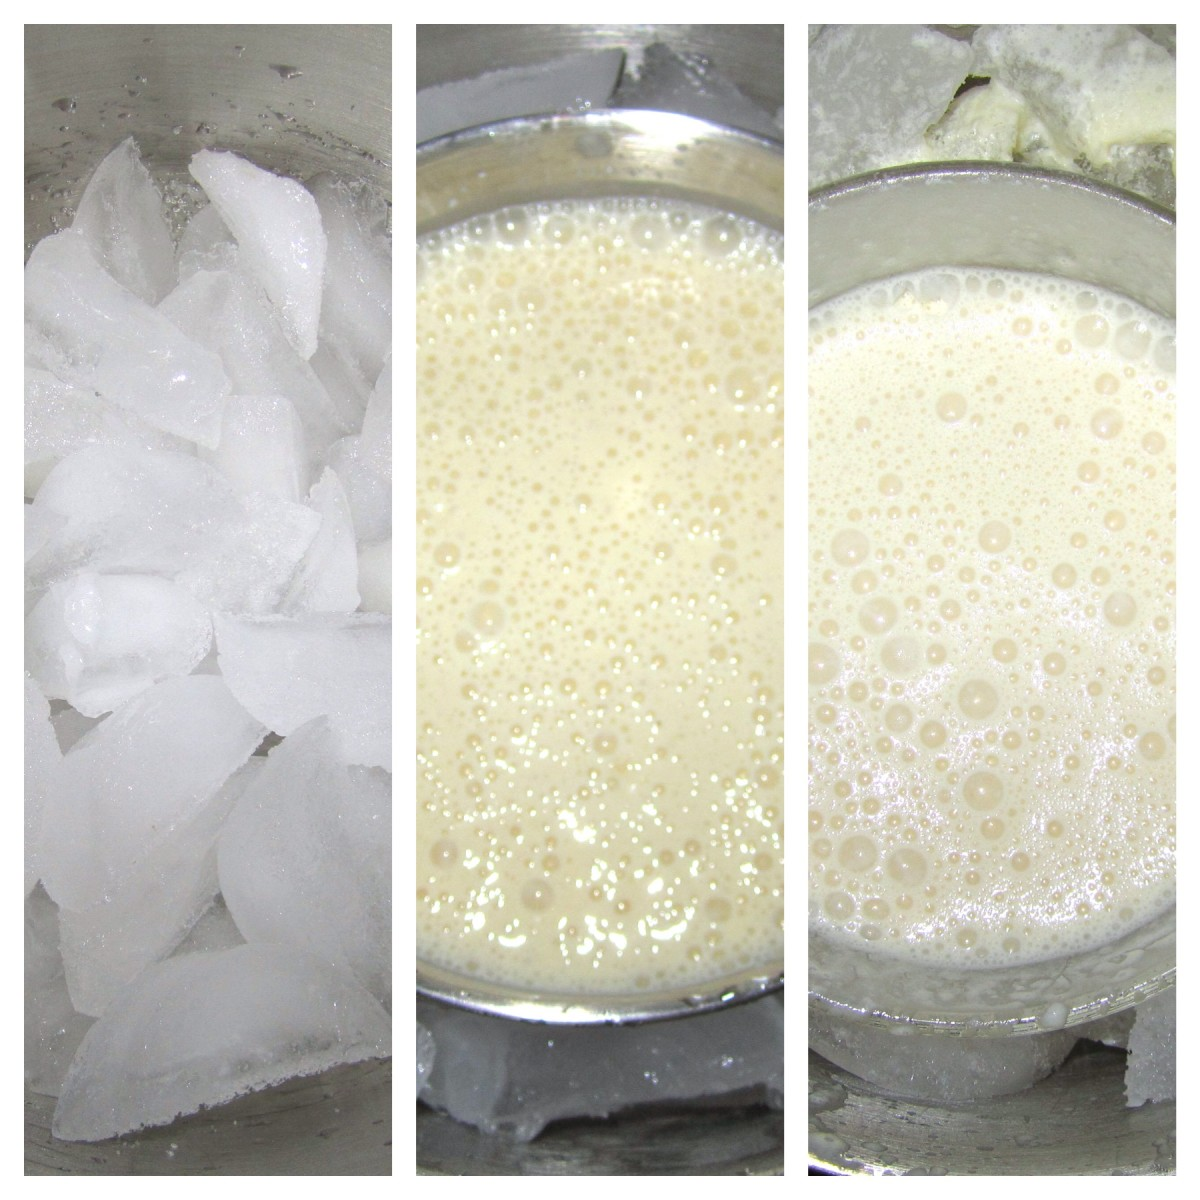 Left: The large mixing bowl filled with ice and salt. Center: The smaller mixing bowl filled with Dole mixture inside the larger bowl. Right: Mixing bowls after being frozen for 45 minutes.